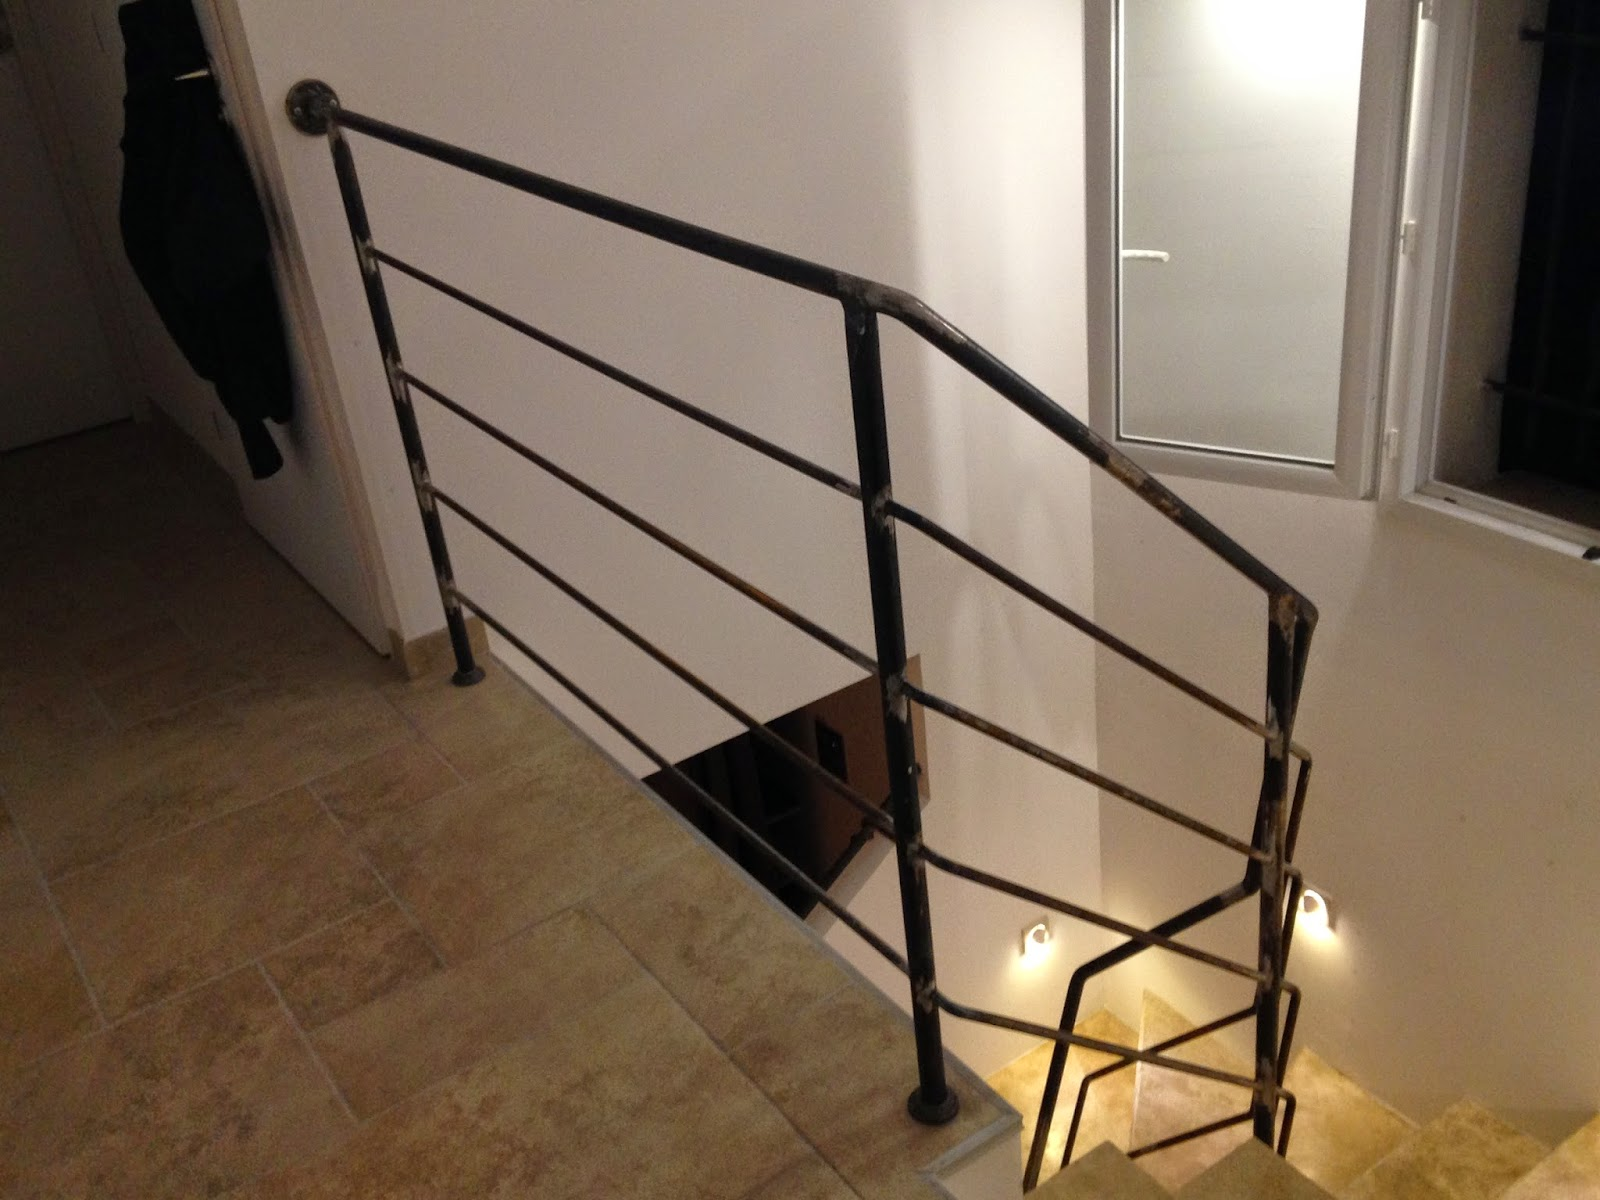 L 39 art de fer creation rampe descalier et main courante fer forg styl - Main courante escalier originale ...